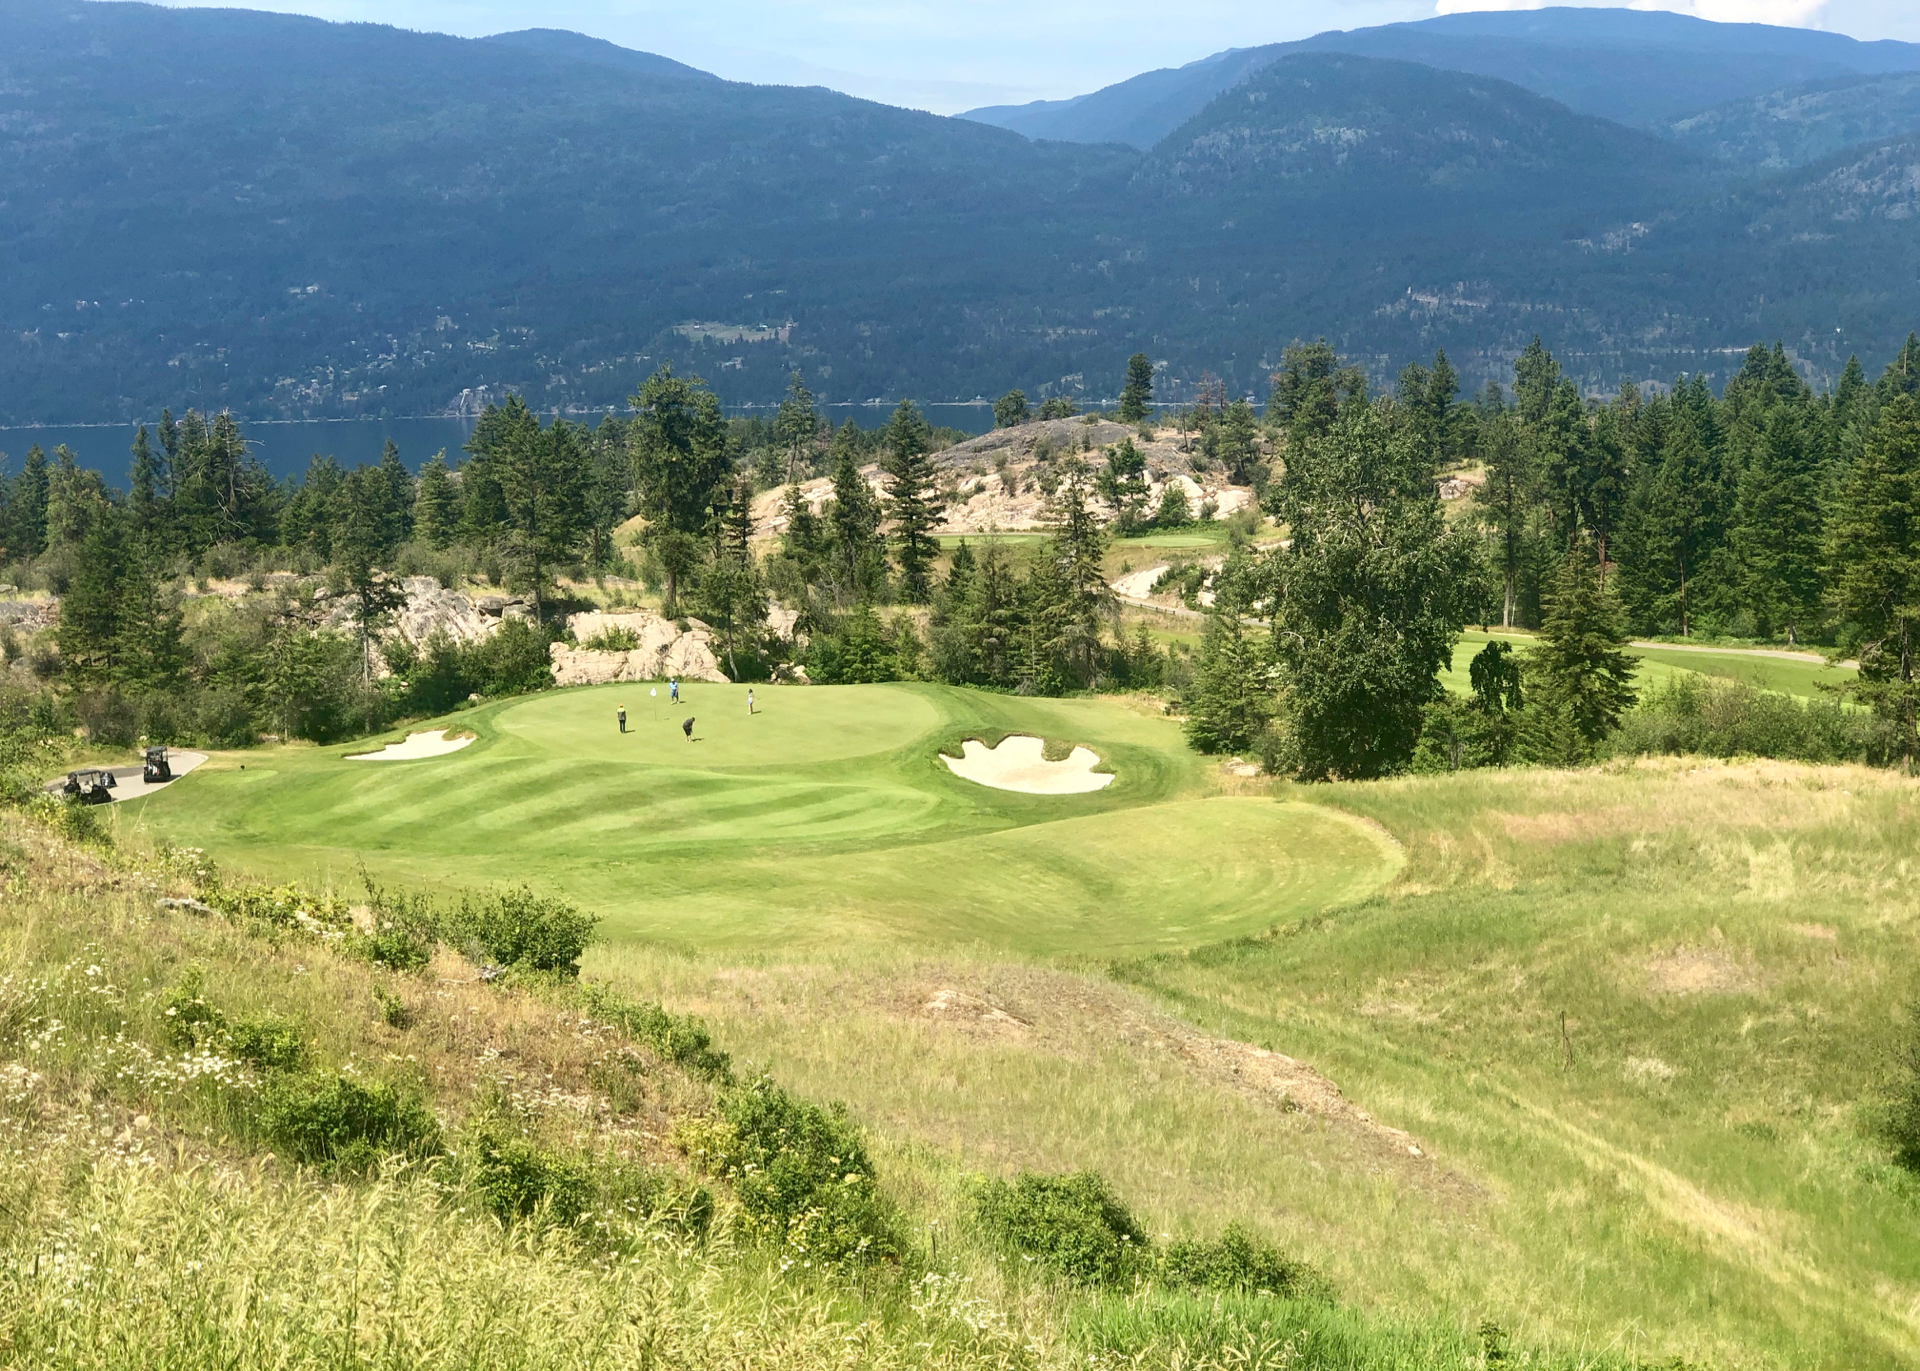 The most dramatic of the downhill par 3s